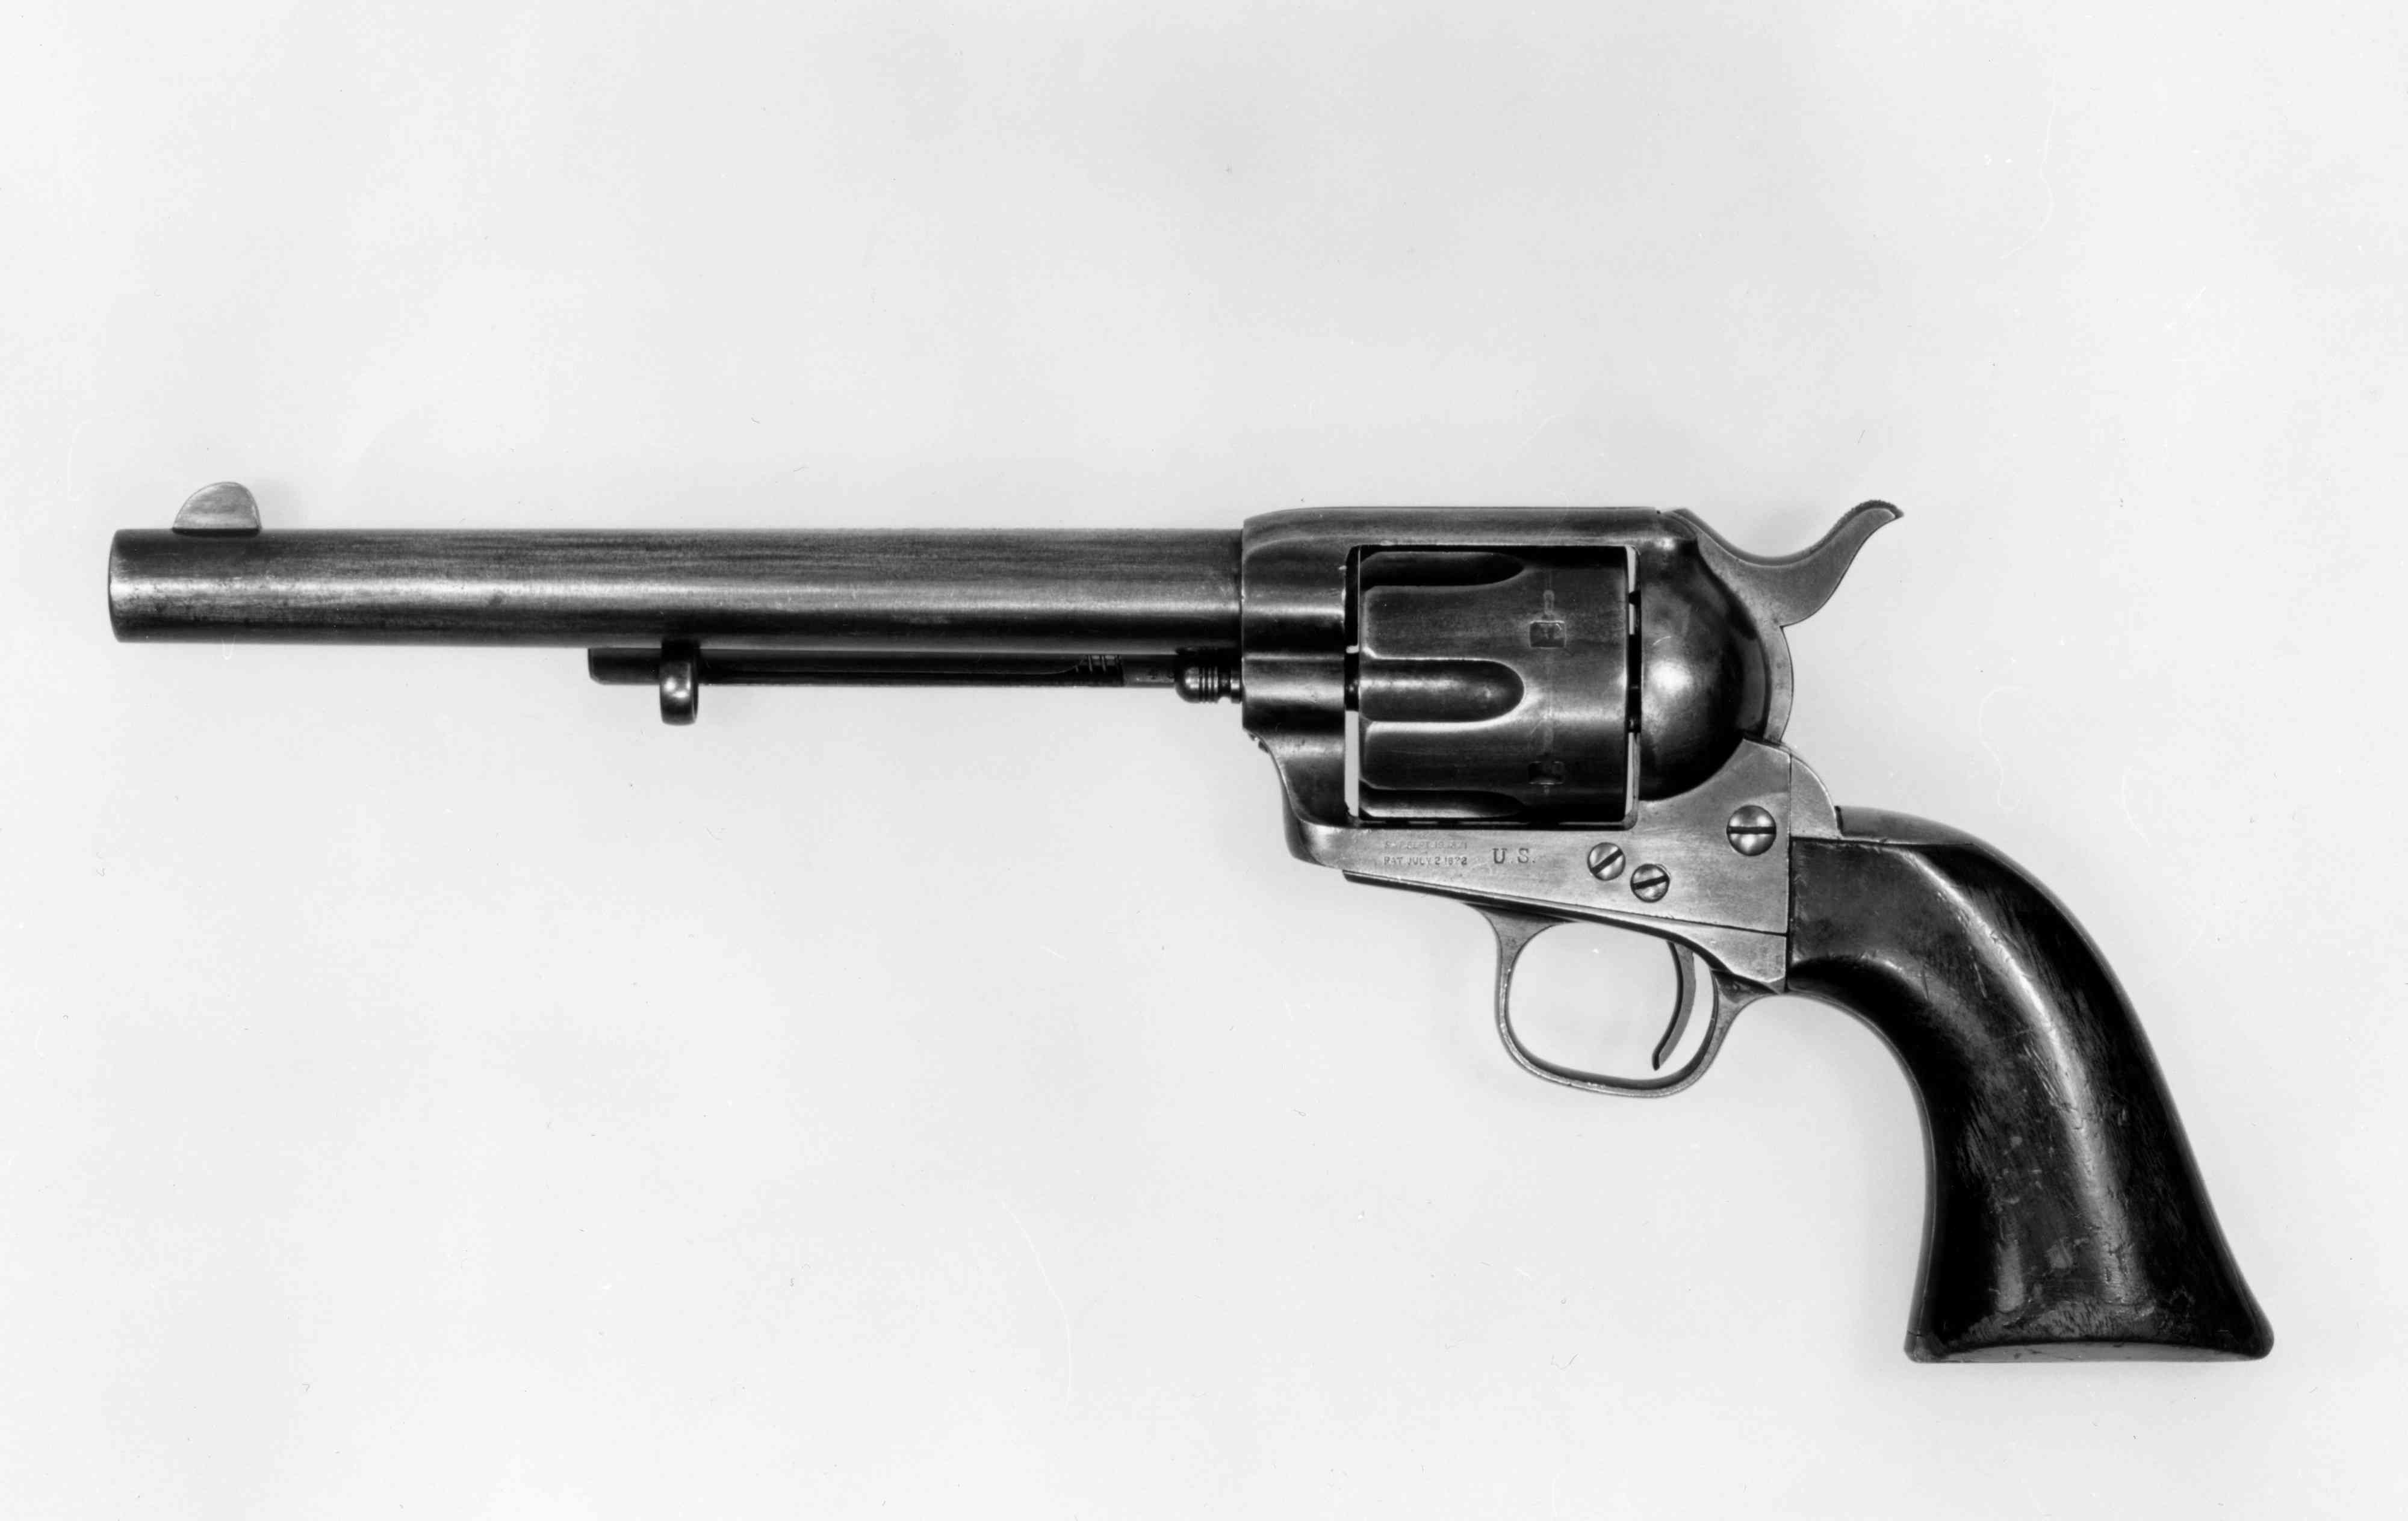 Colt Single-Action Army Revolver, the iconic